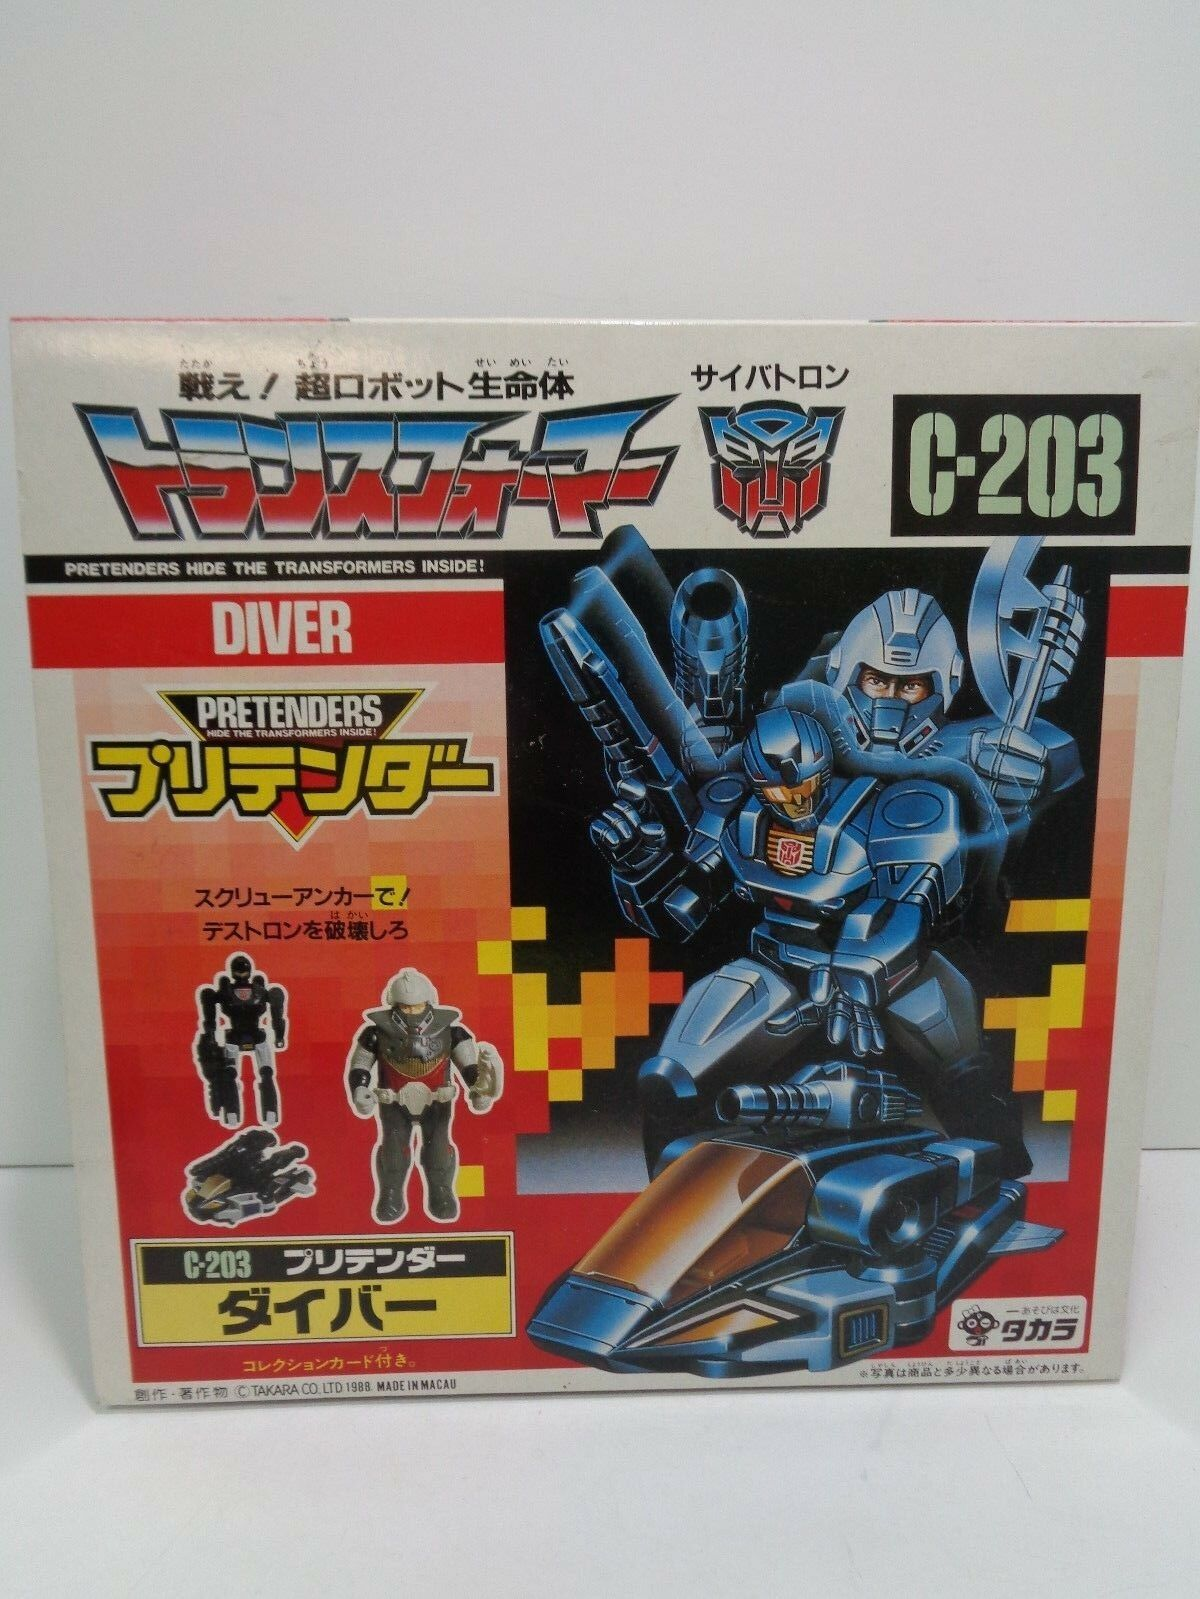 Transformers DIVER Pretenders C-203 - Sealed Mint in Box - 1988 Takara